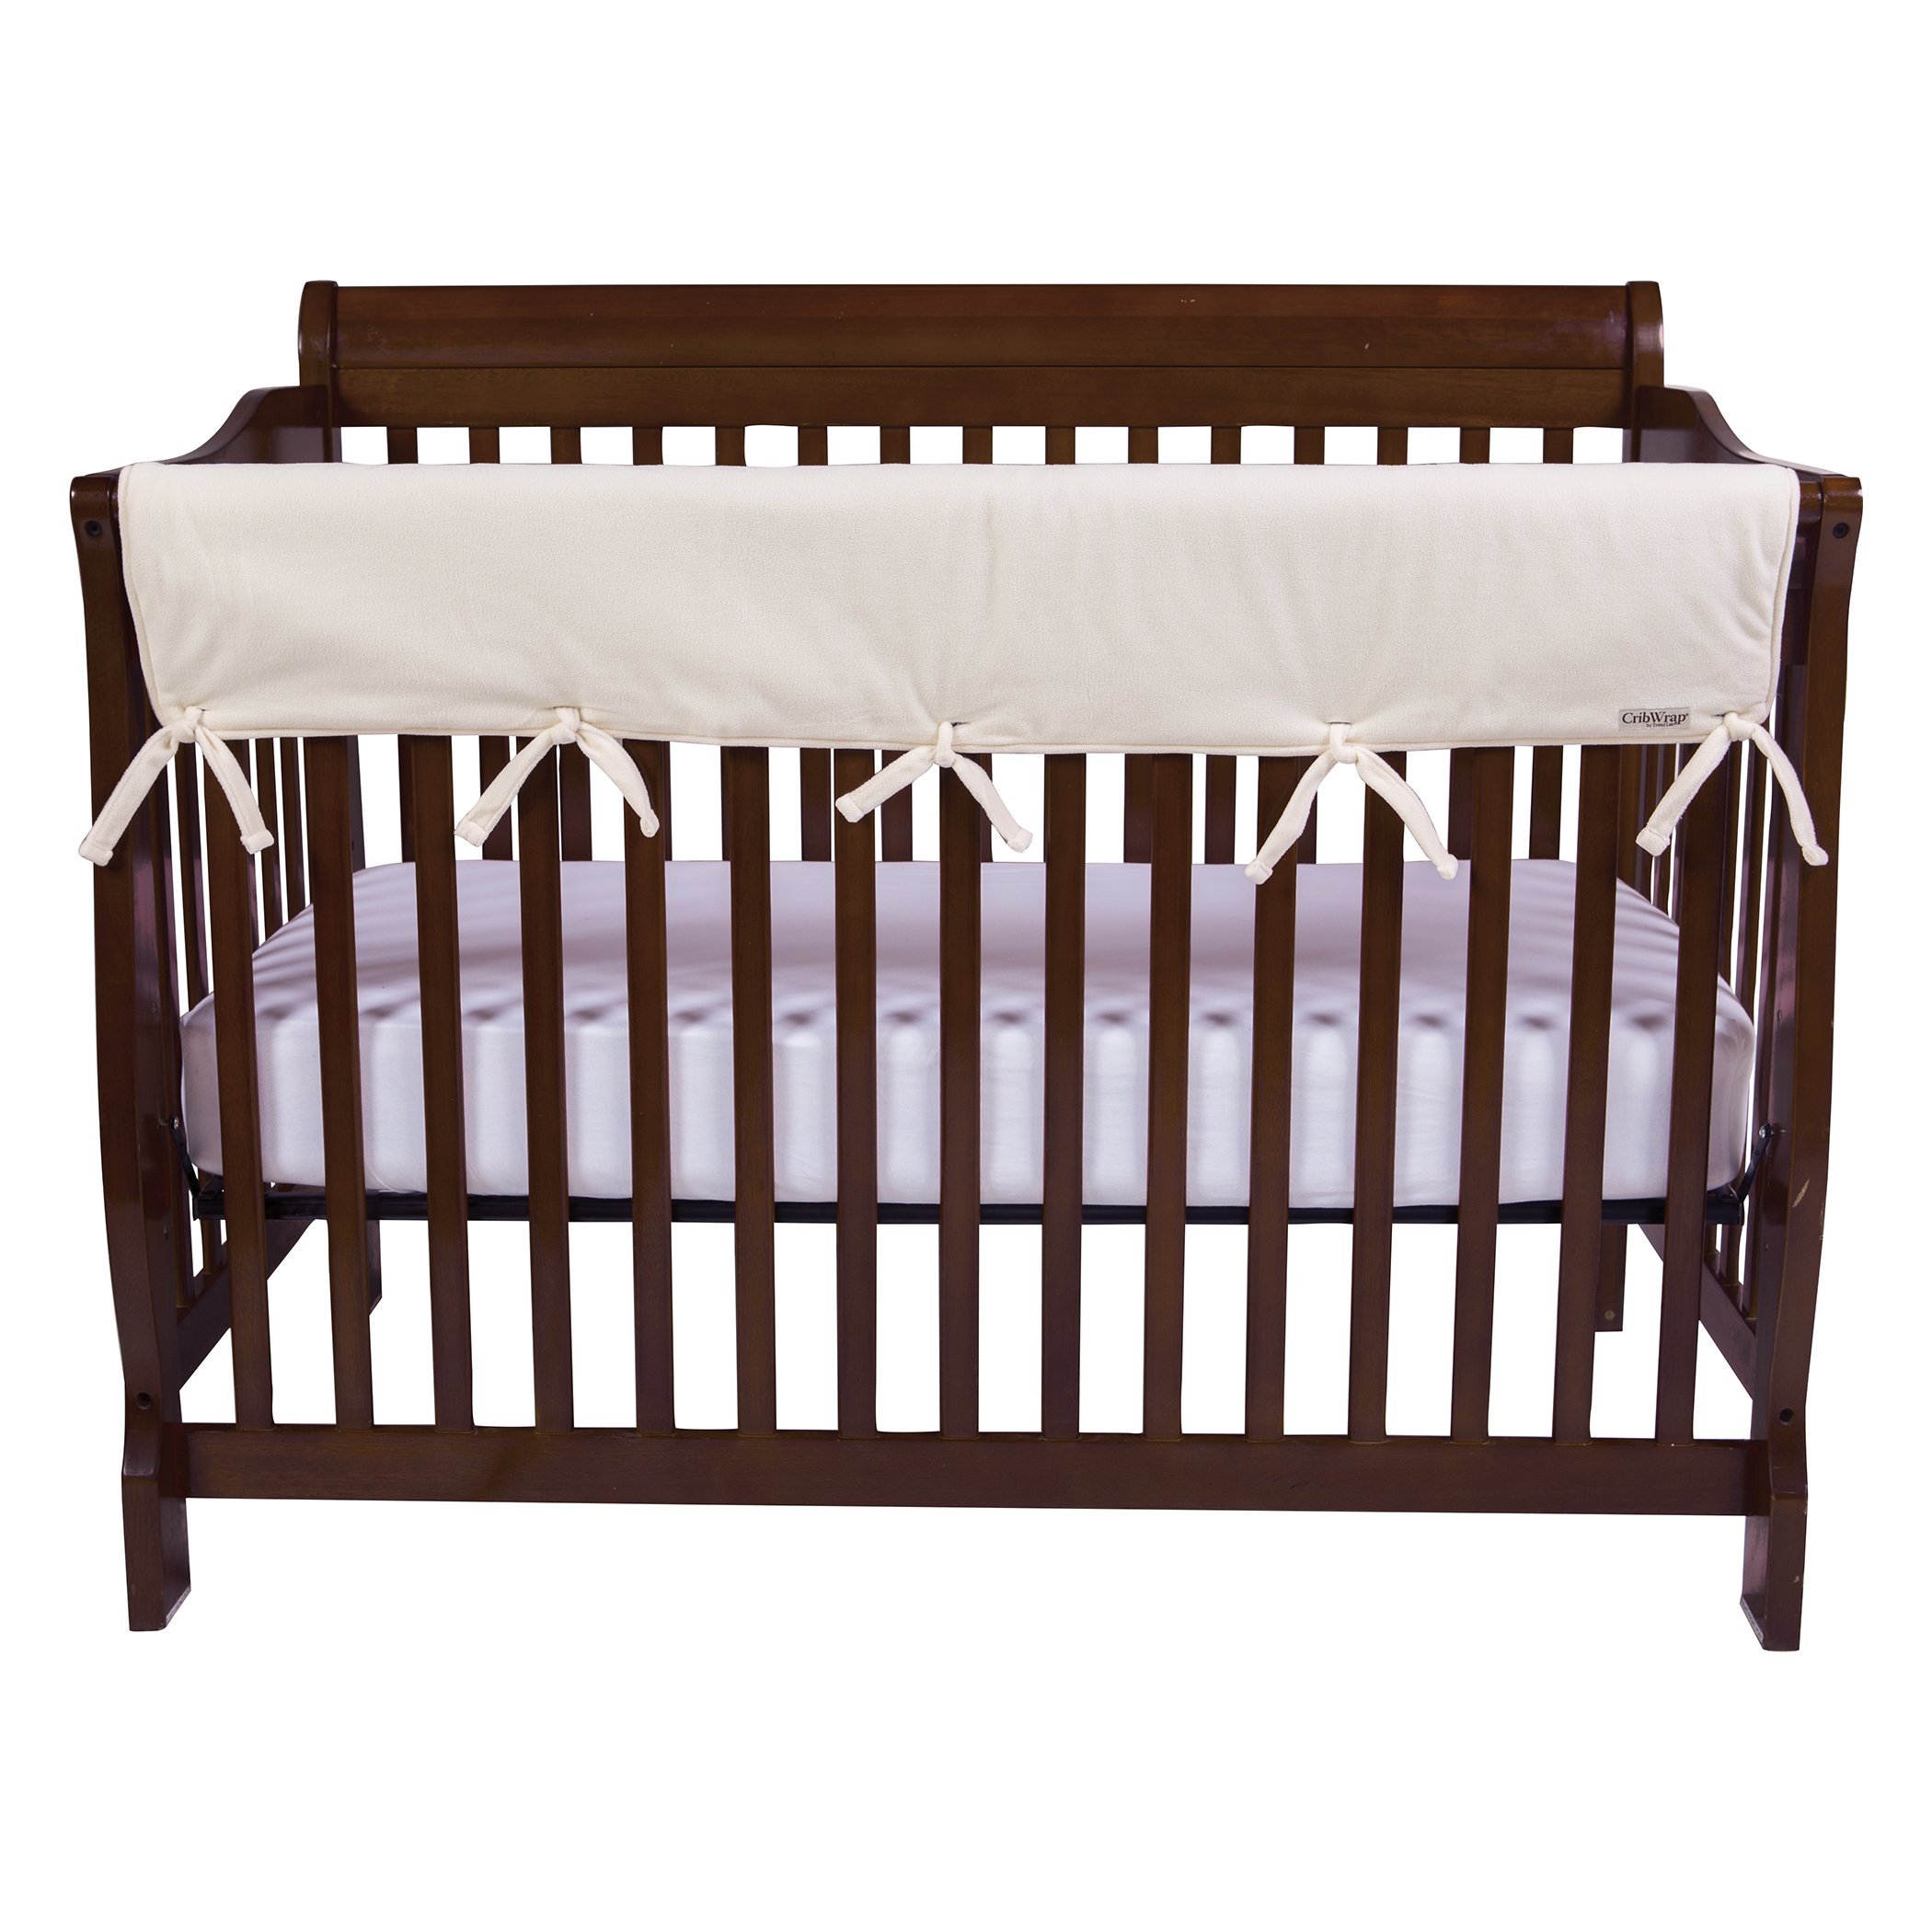 Trend Lab Waterproof CribWrap Rail Cover - for Wide Long Crib Rails Made to Fit Rails up to 18'' Around by Trend Lab